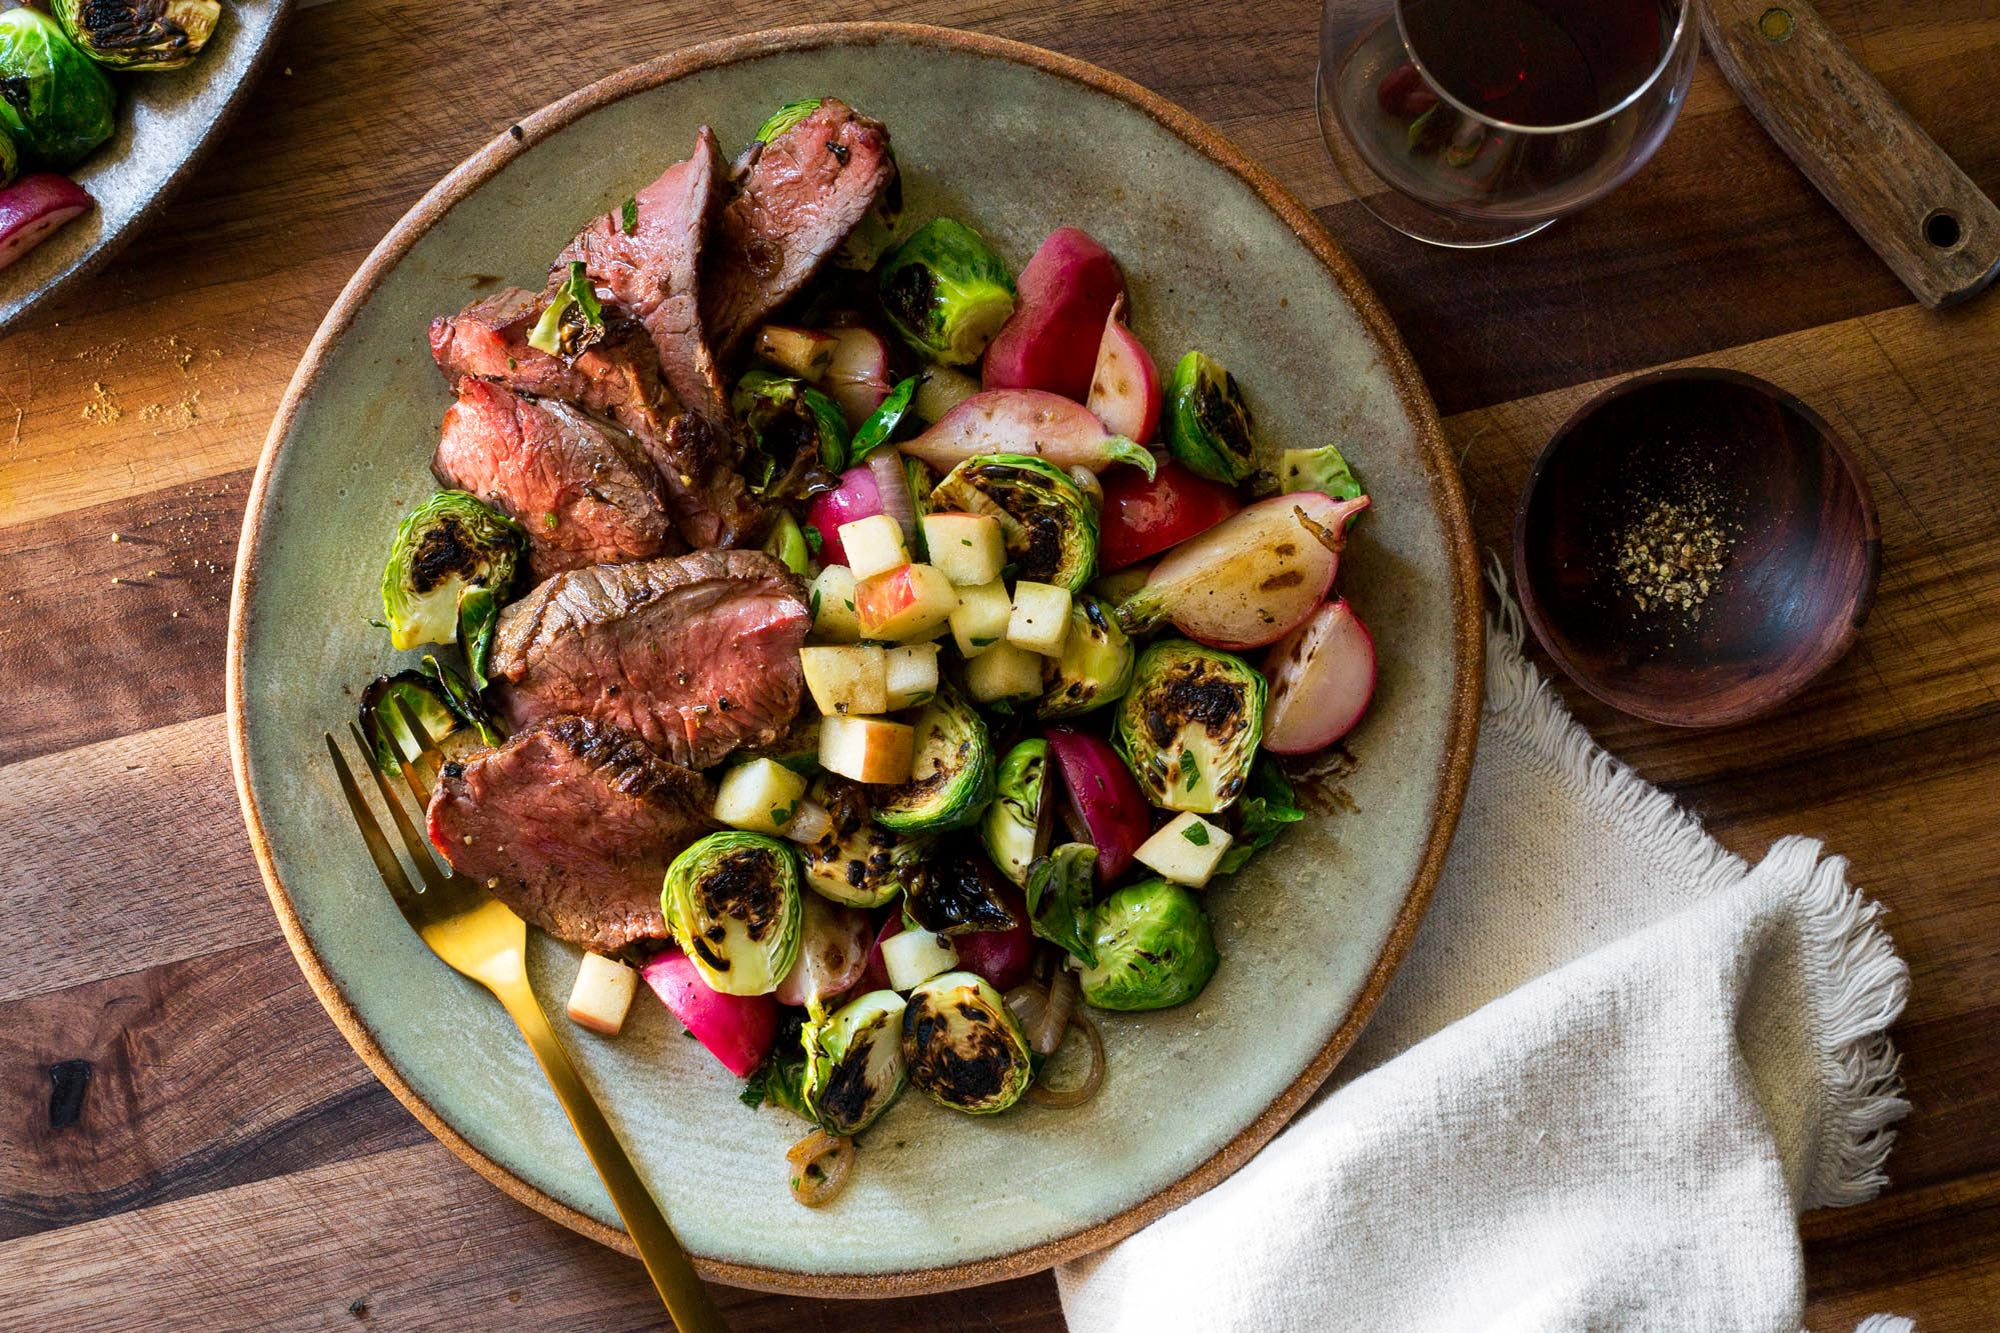 B084_Steaks-Balsamic-Glazed-Radishes-Brussels-Sprouts_Menu-Page.jpg